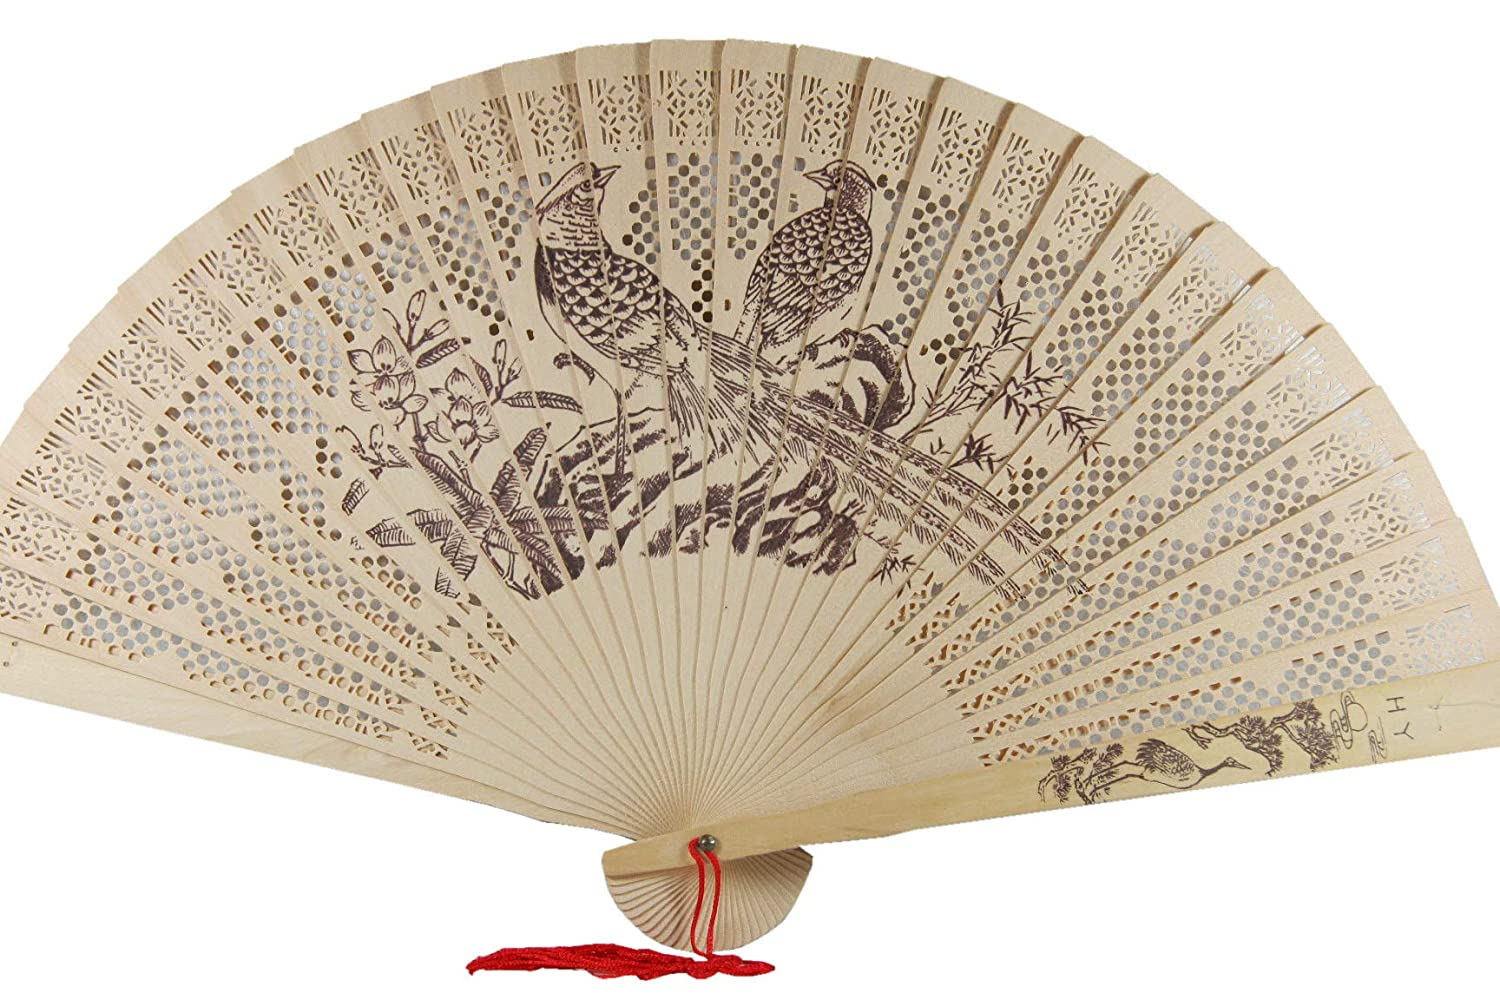 9' CHINESE HAND HELD WOODEN FAN FANS